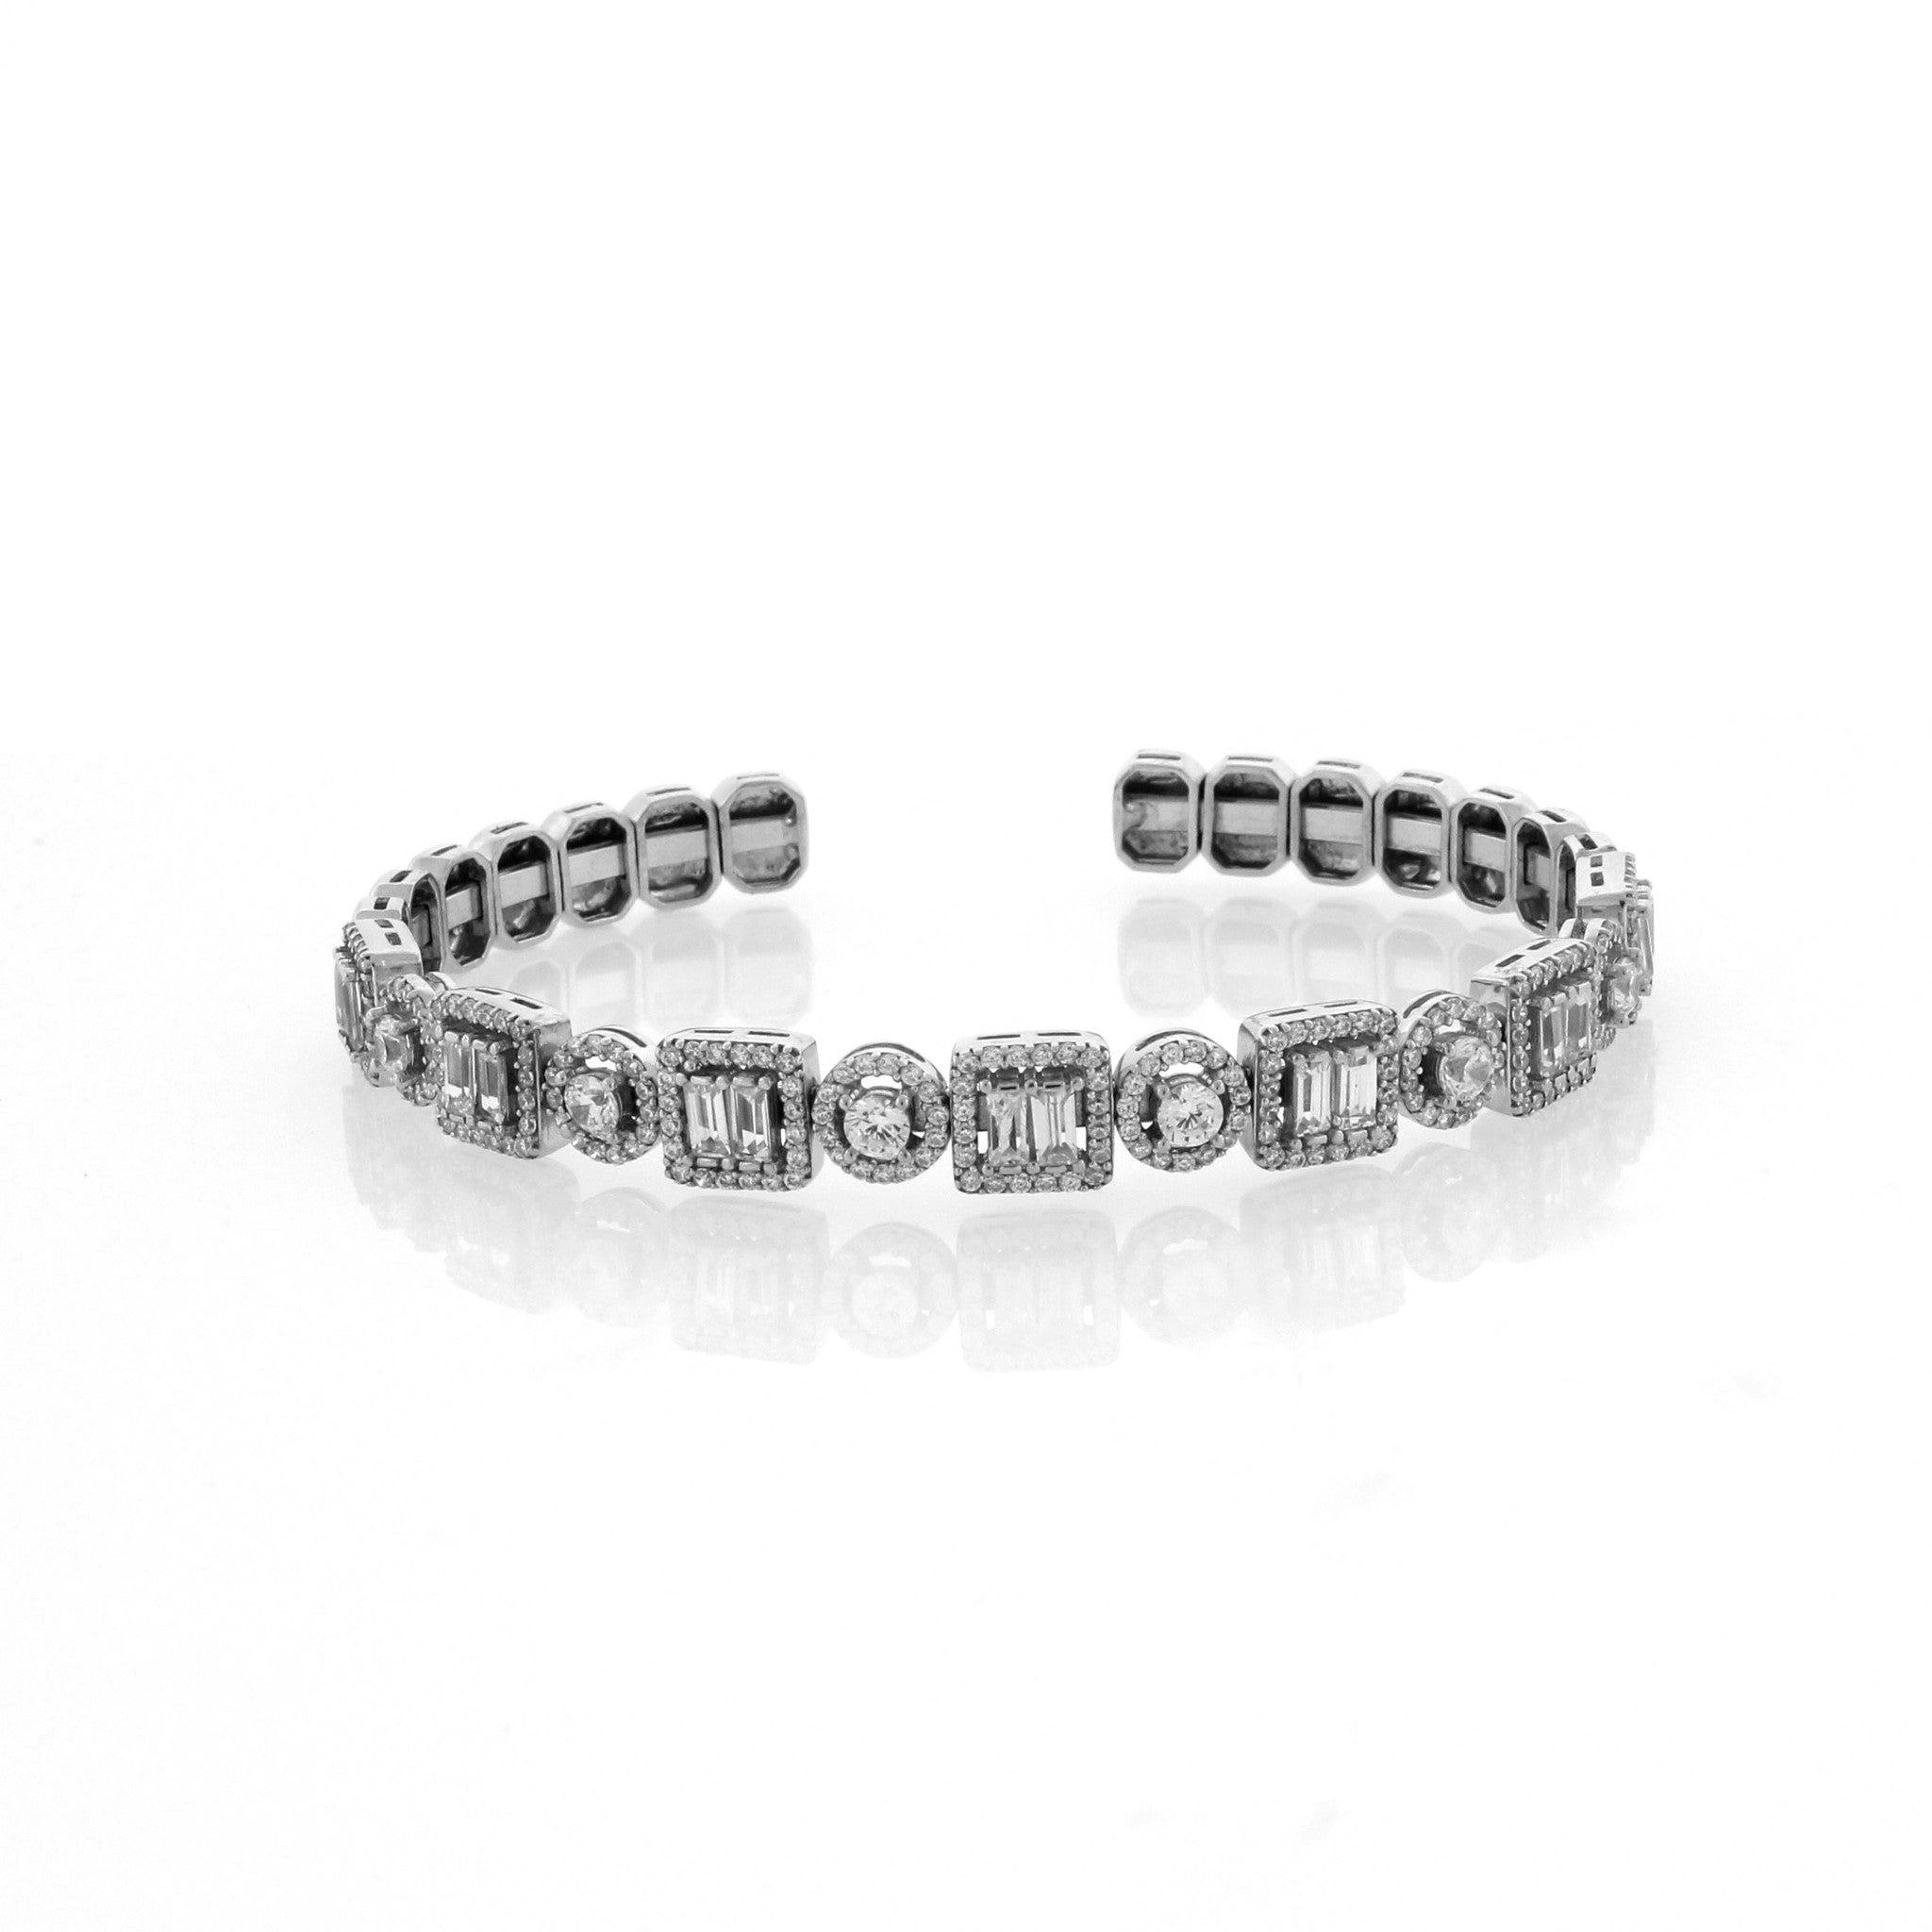 bracelets nicole mera diamond bangle bangles brace pave